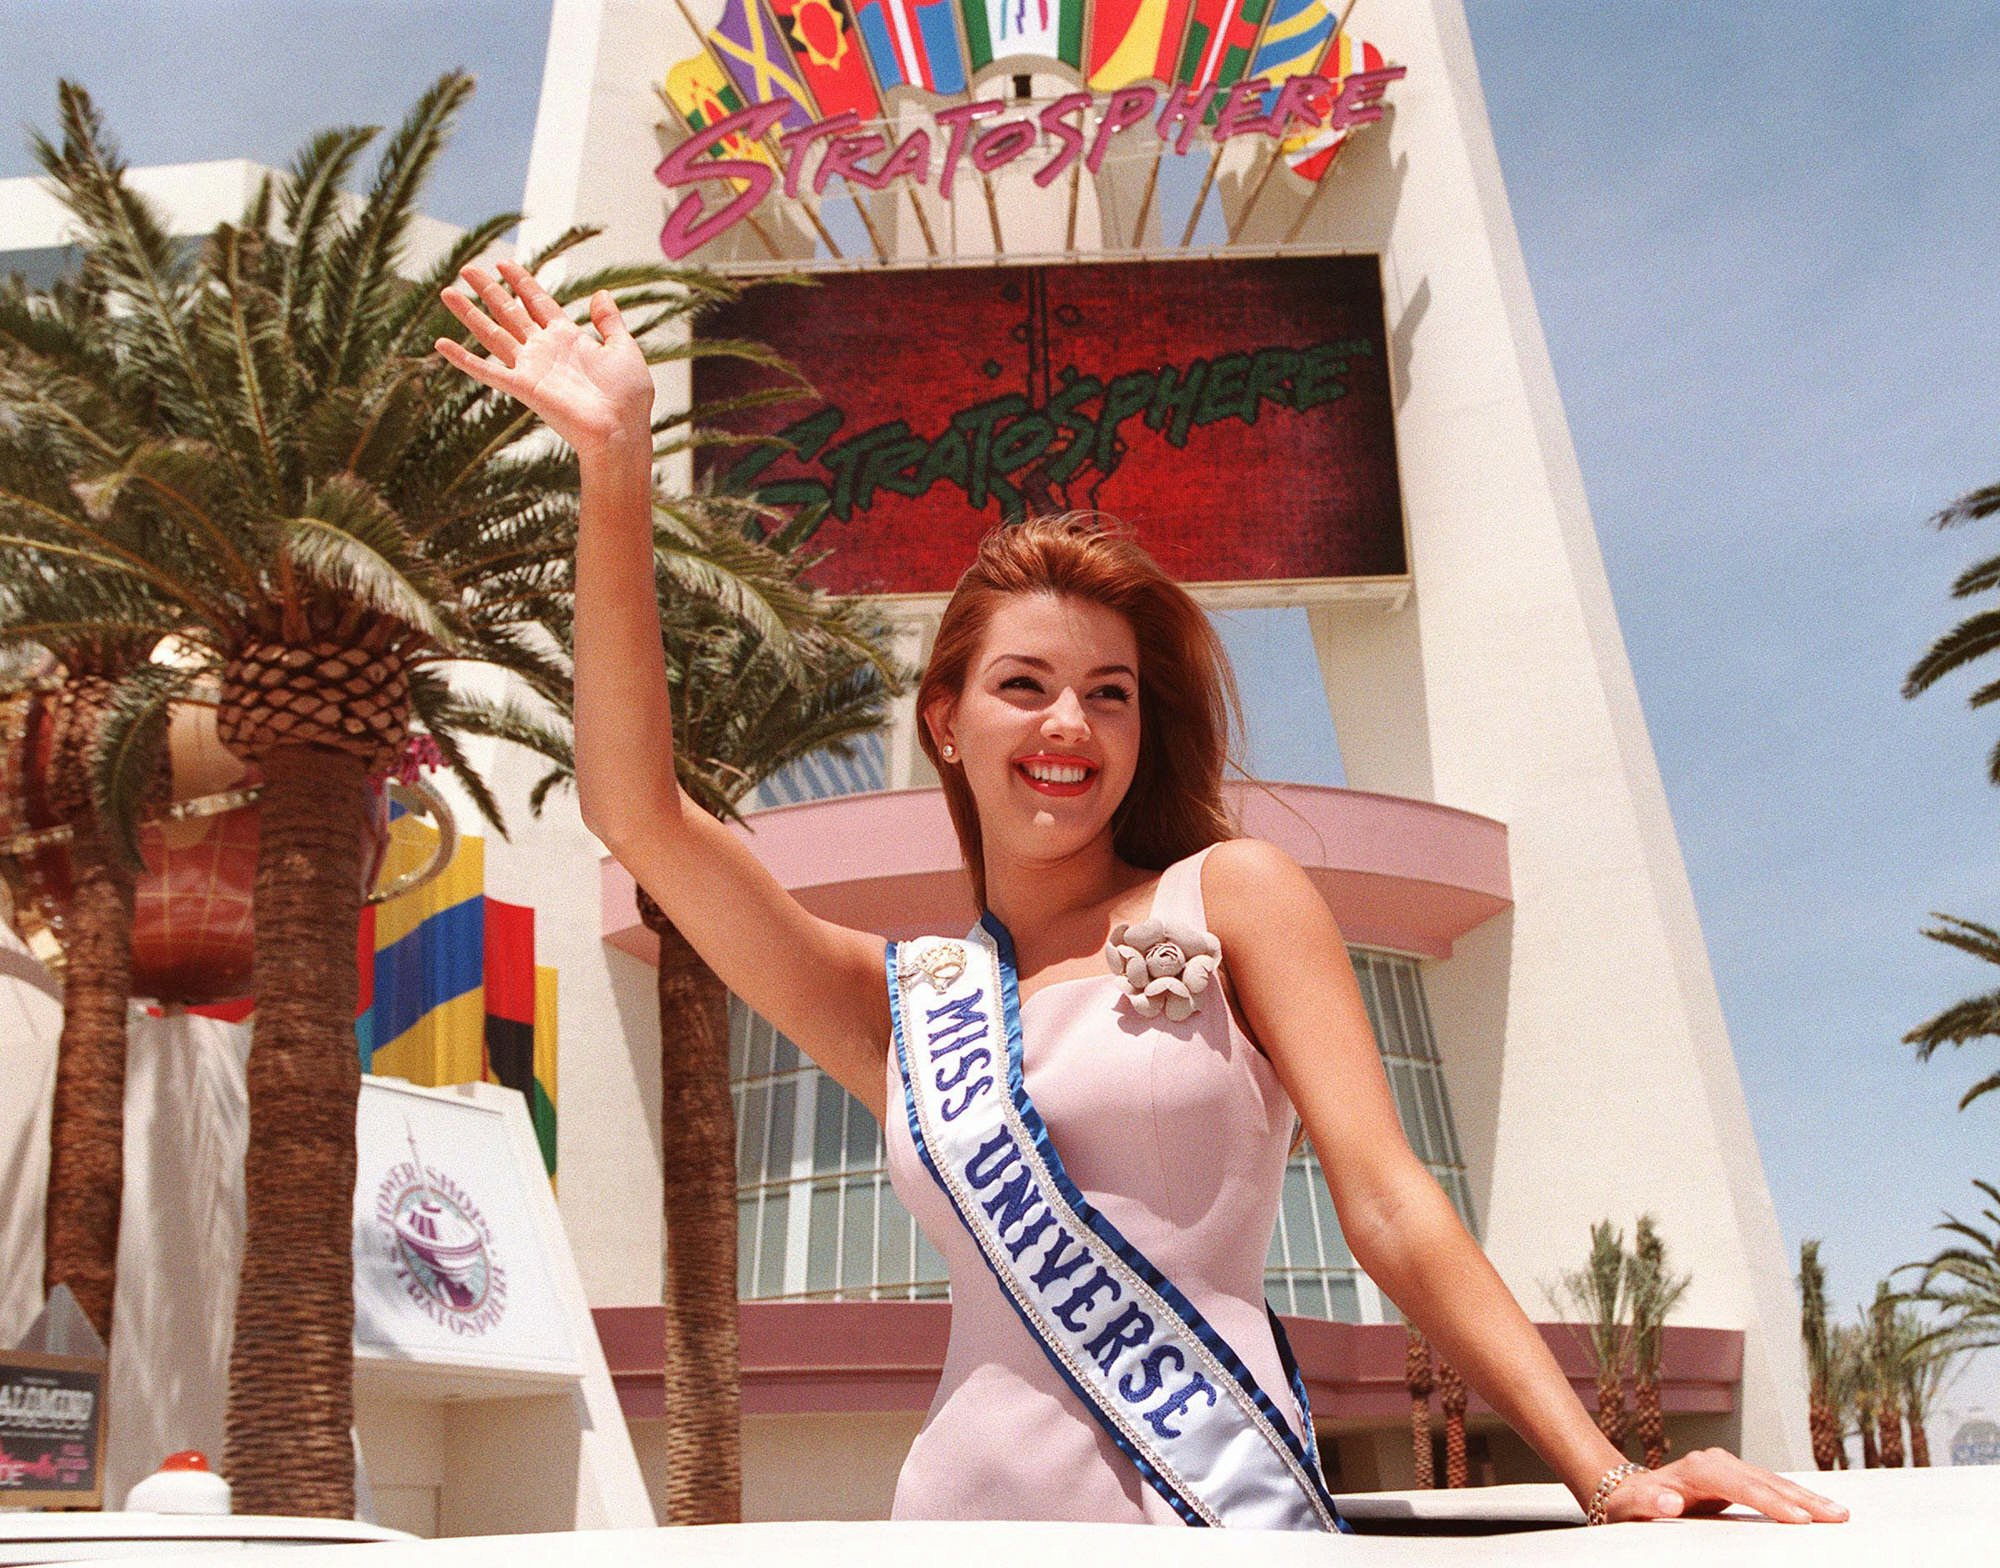 Miss Universe 1996: Alicia Machado of Venezuela, Miss Universe 1996, in Las Vegas, May 18, 1996